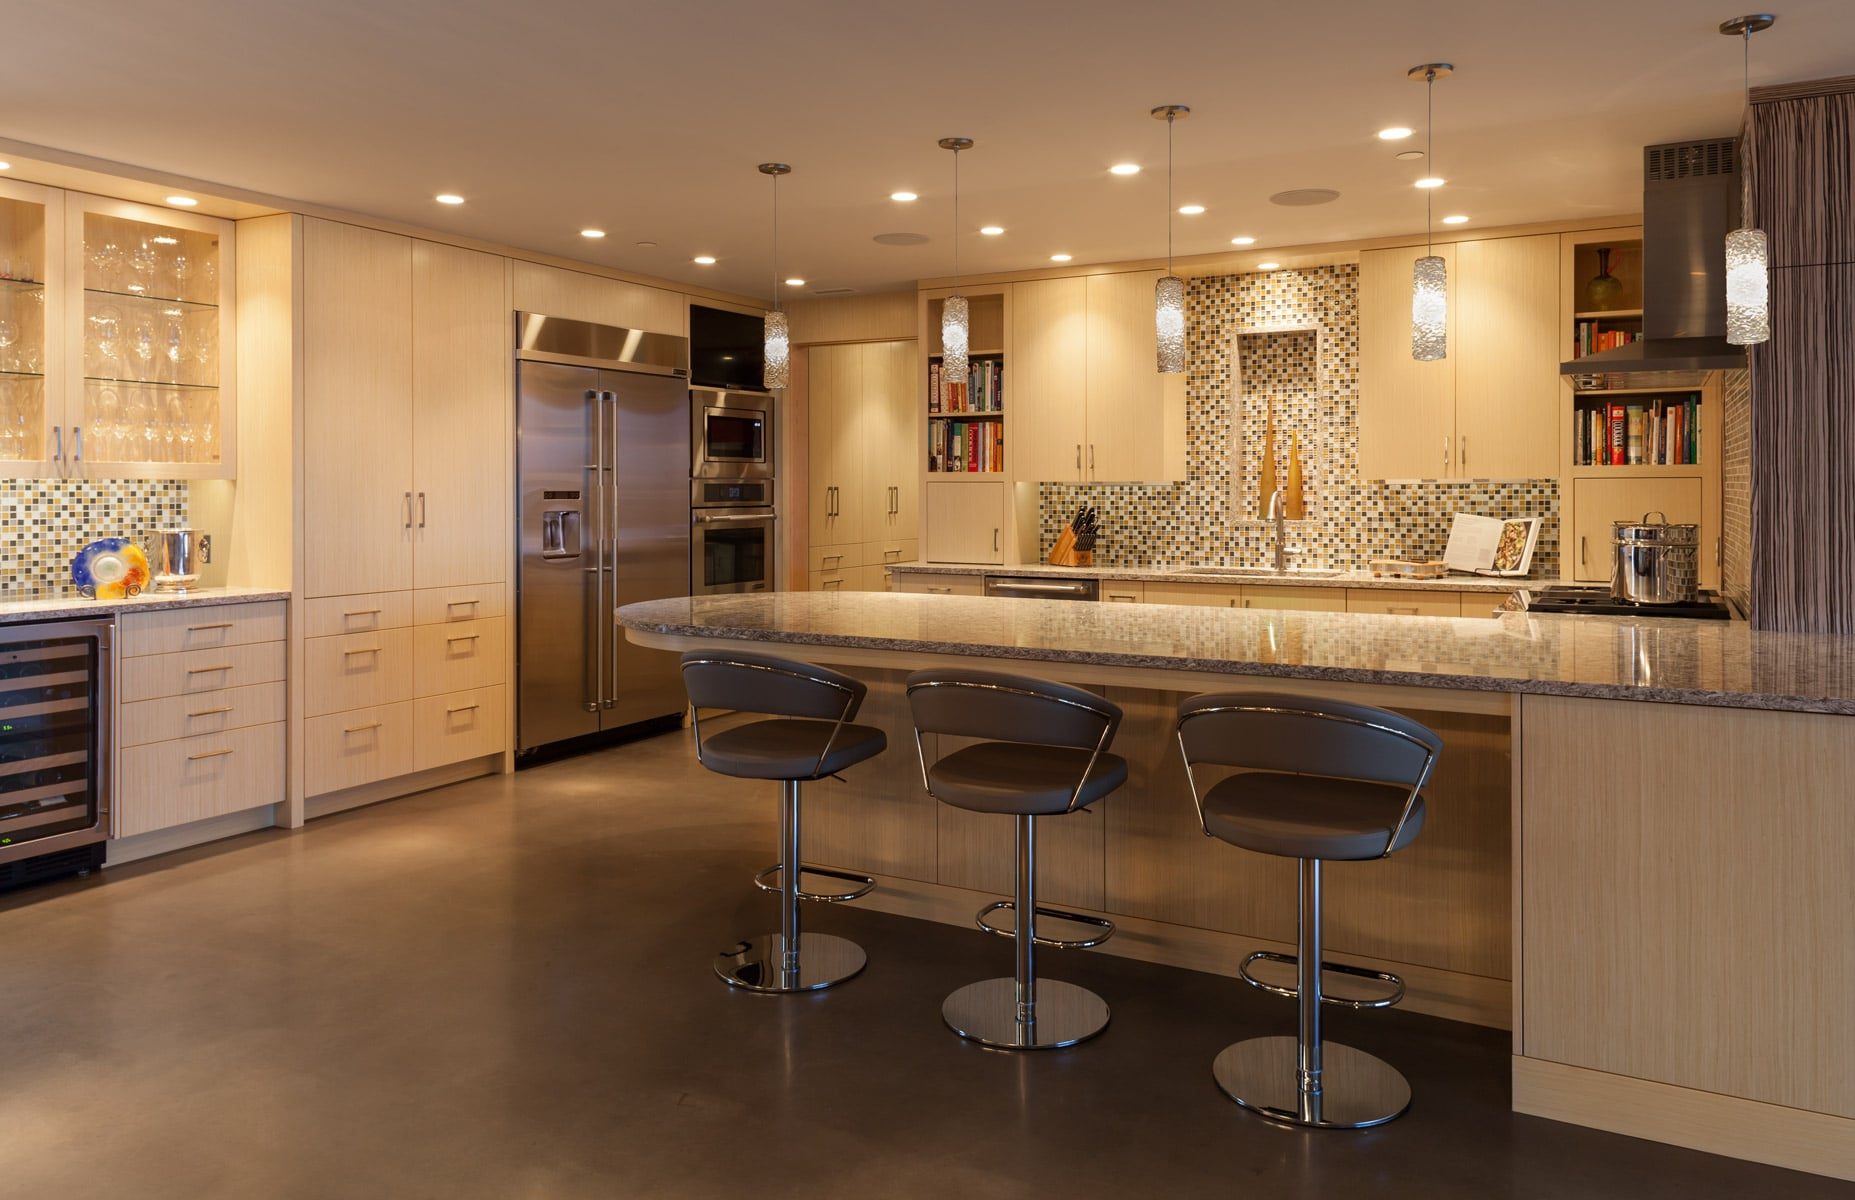 Distinctive-Penthouse-Kitchen-Minneapolis-interior-designer.jpg